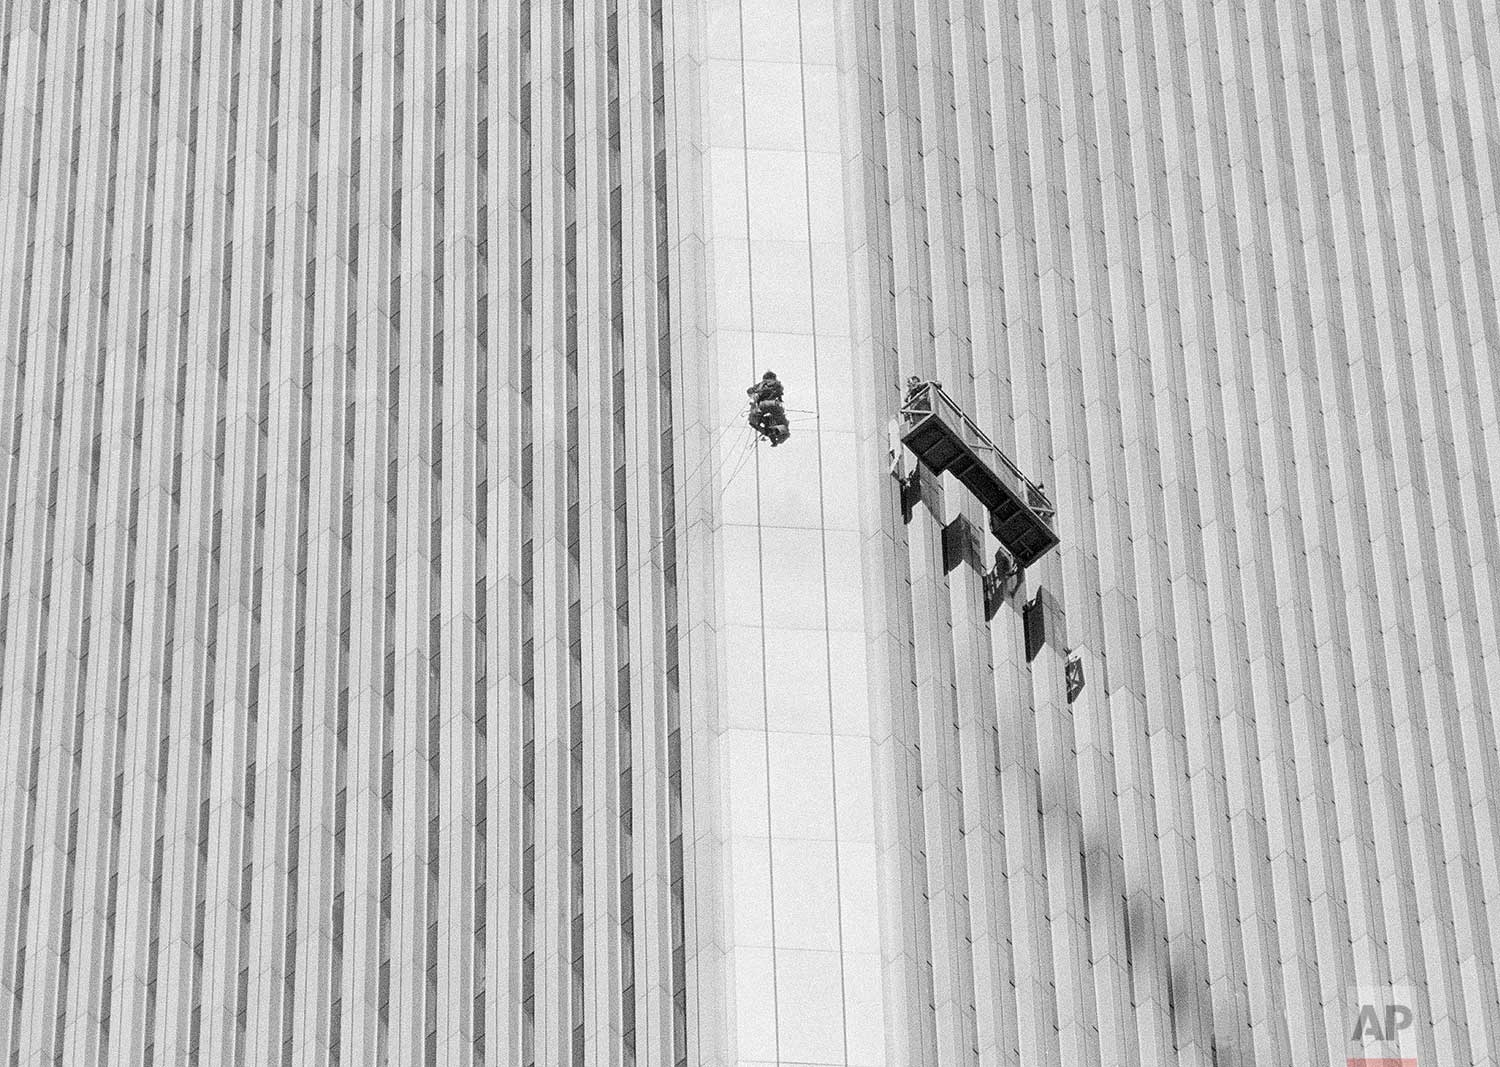 Using an invention he fashioned himself, George Willig heads for the quarter mile-high top of New York's World Trade Center, May 26, 1977. Thousands of spectators thronged the streets below to watch the 27-year-old amateur mountaineer in the 1,350-foot climb. (AP Photo/Dave Pickoff)